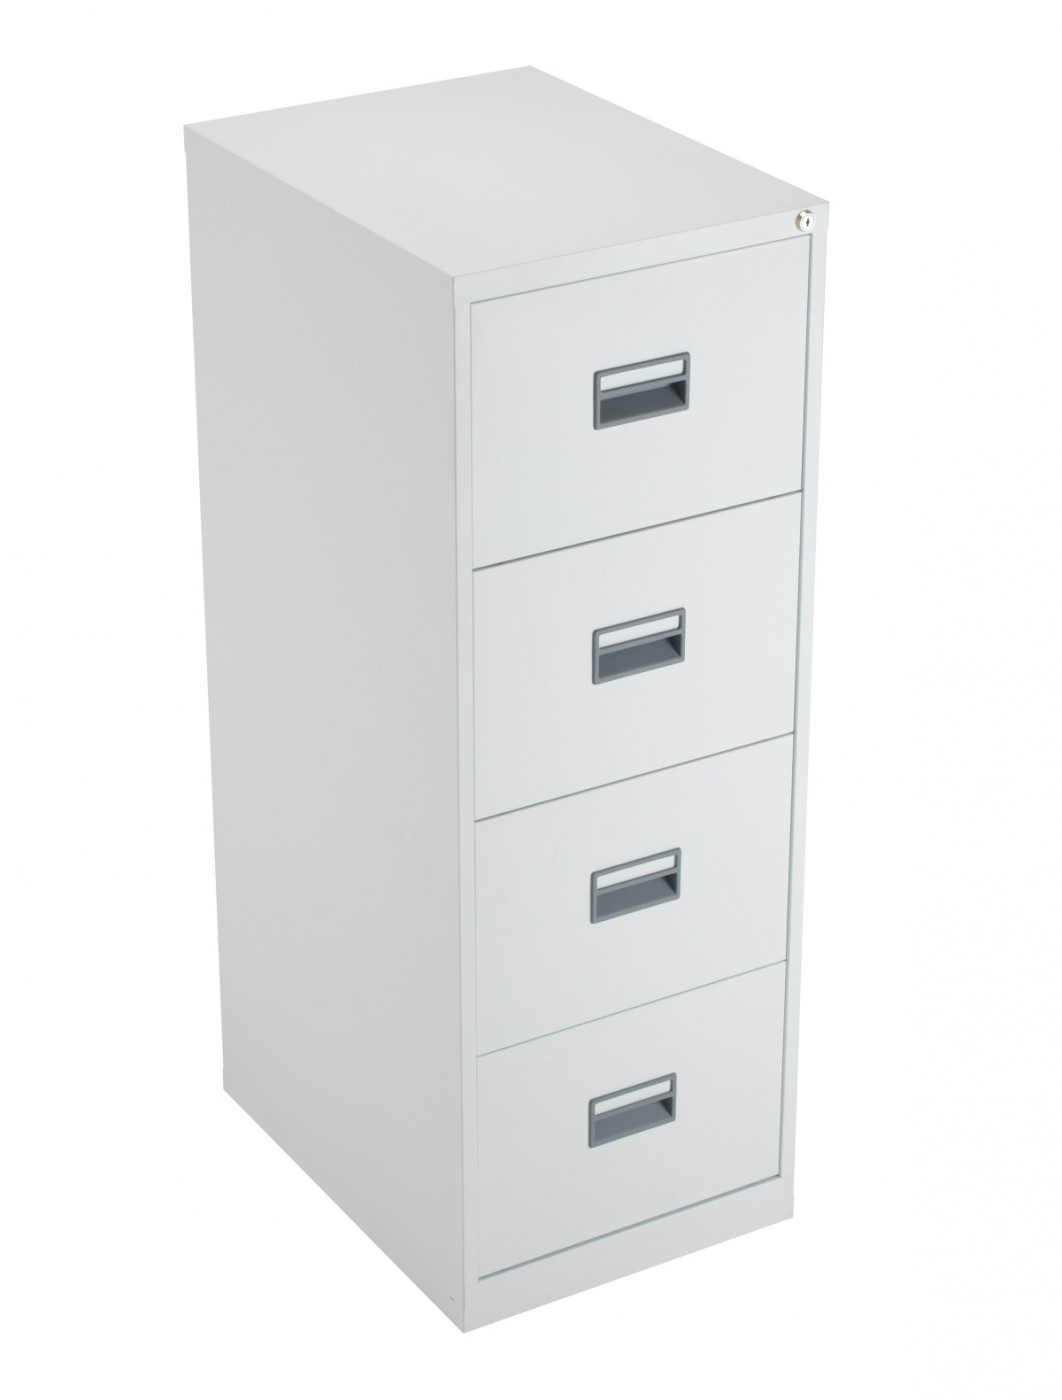 TC Talos 4 Drawer Steel Filing Cabinet TCS4FCWH in White